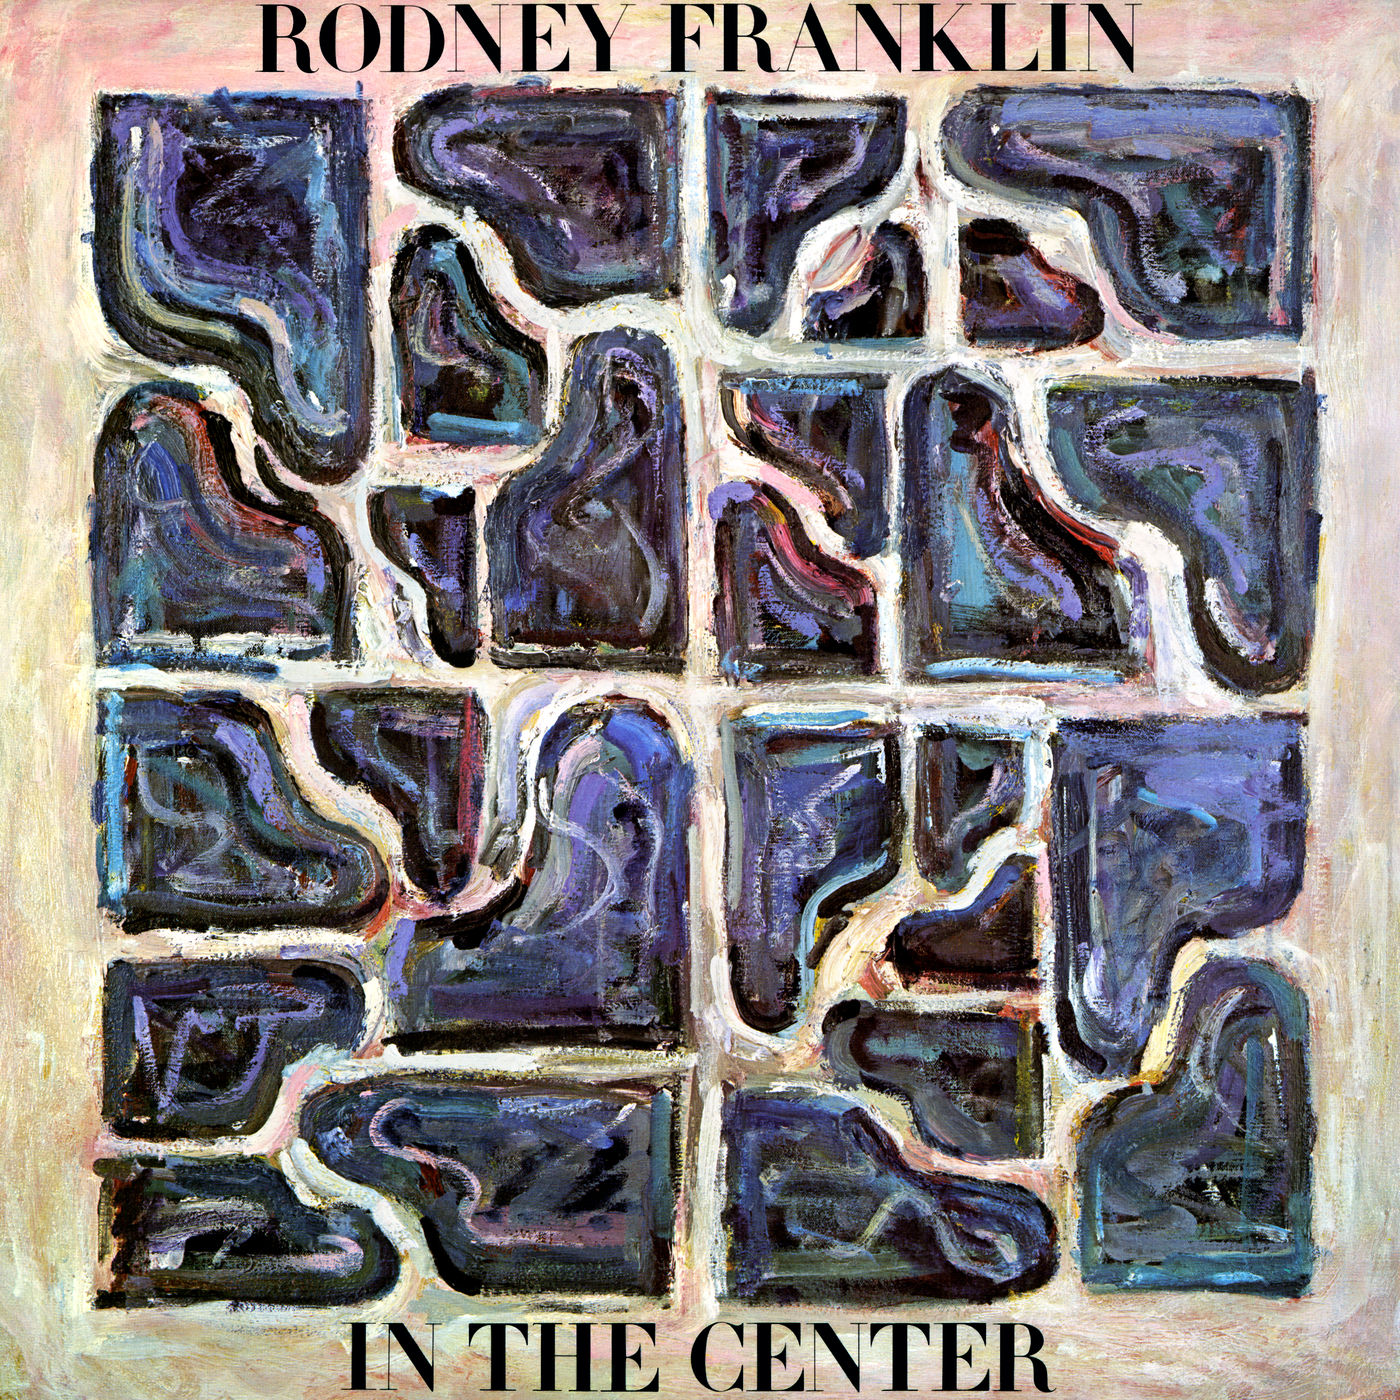 In the Center - Rodney Franklin